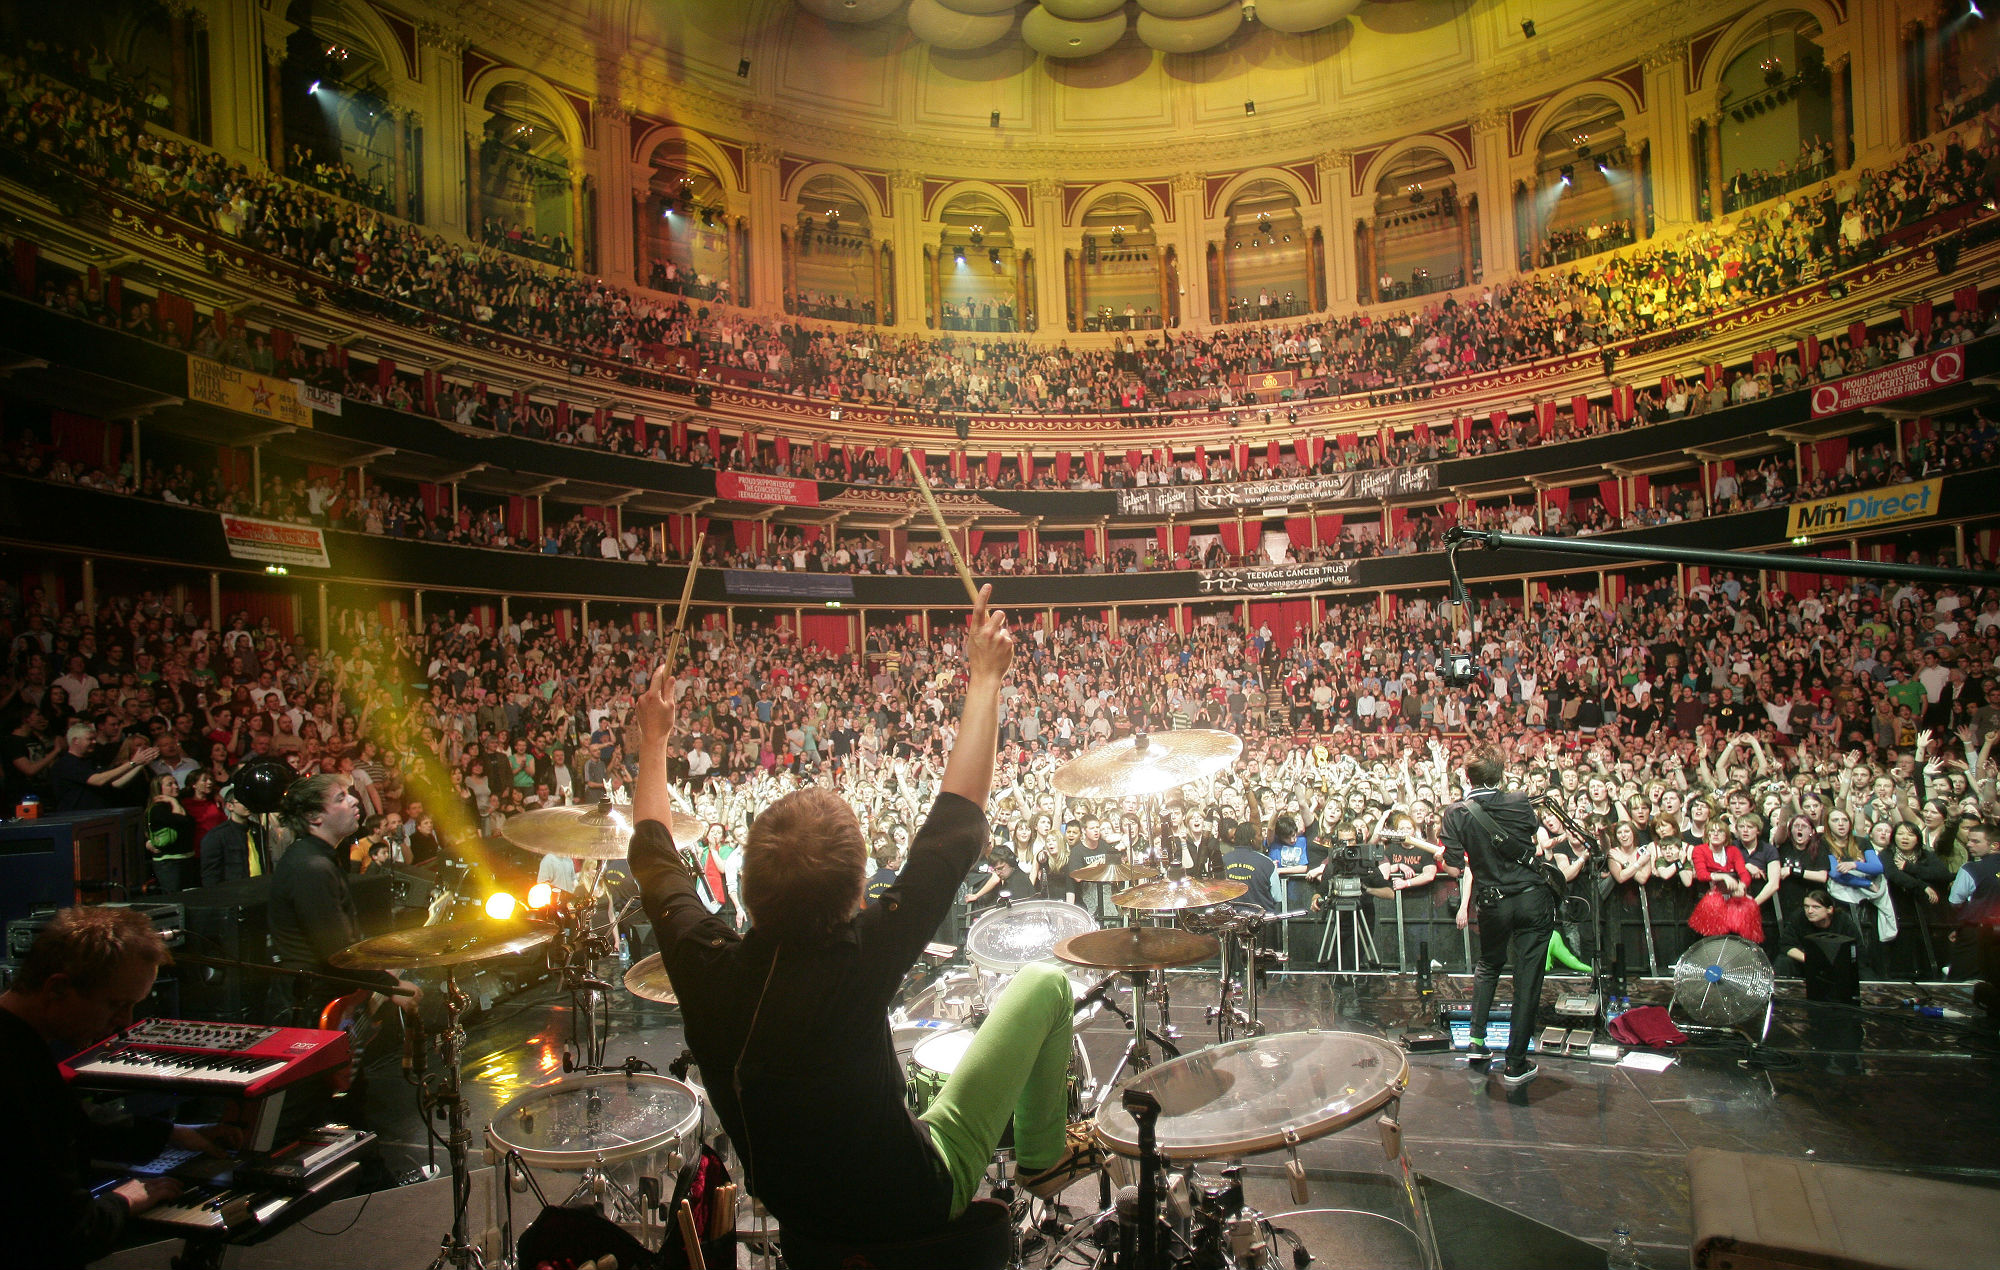 View from the back of the stage as Muse perform at the Royal Albert Hall, London, 12th April 2008. (Photo by Mick Hutson/Redferns)